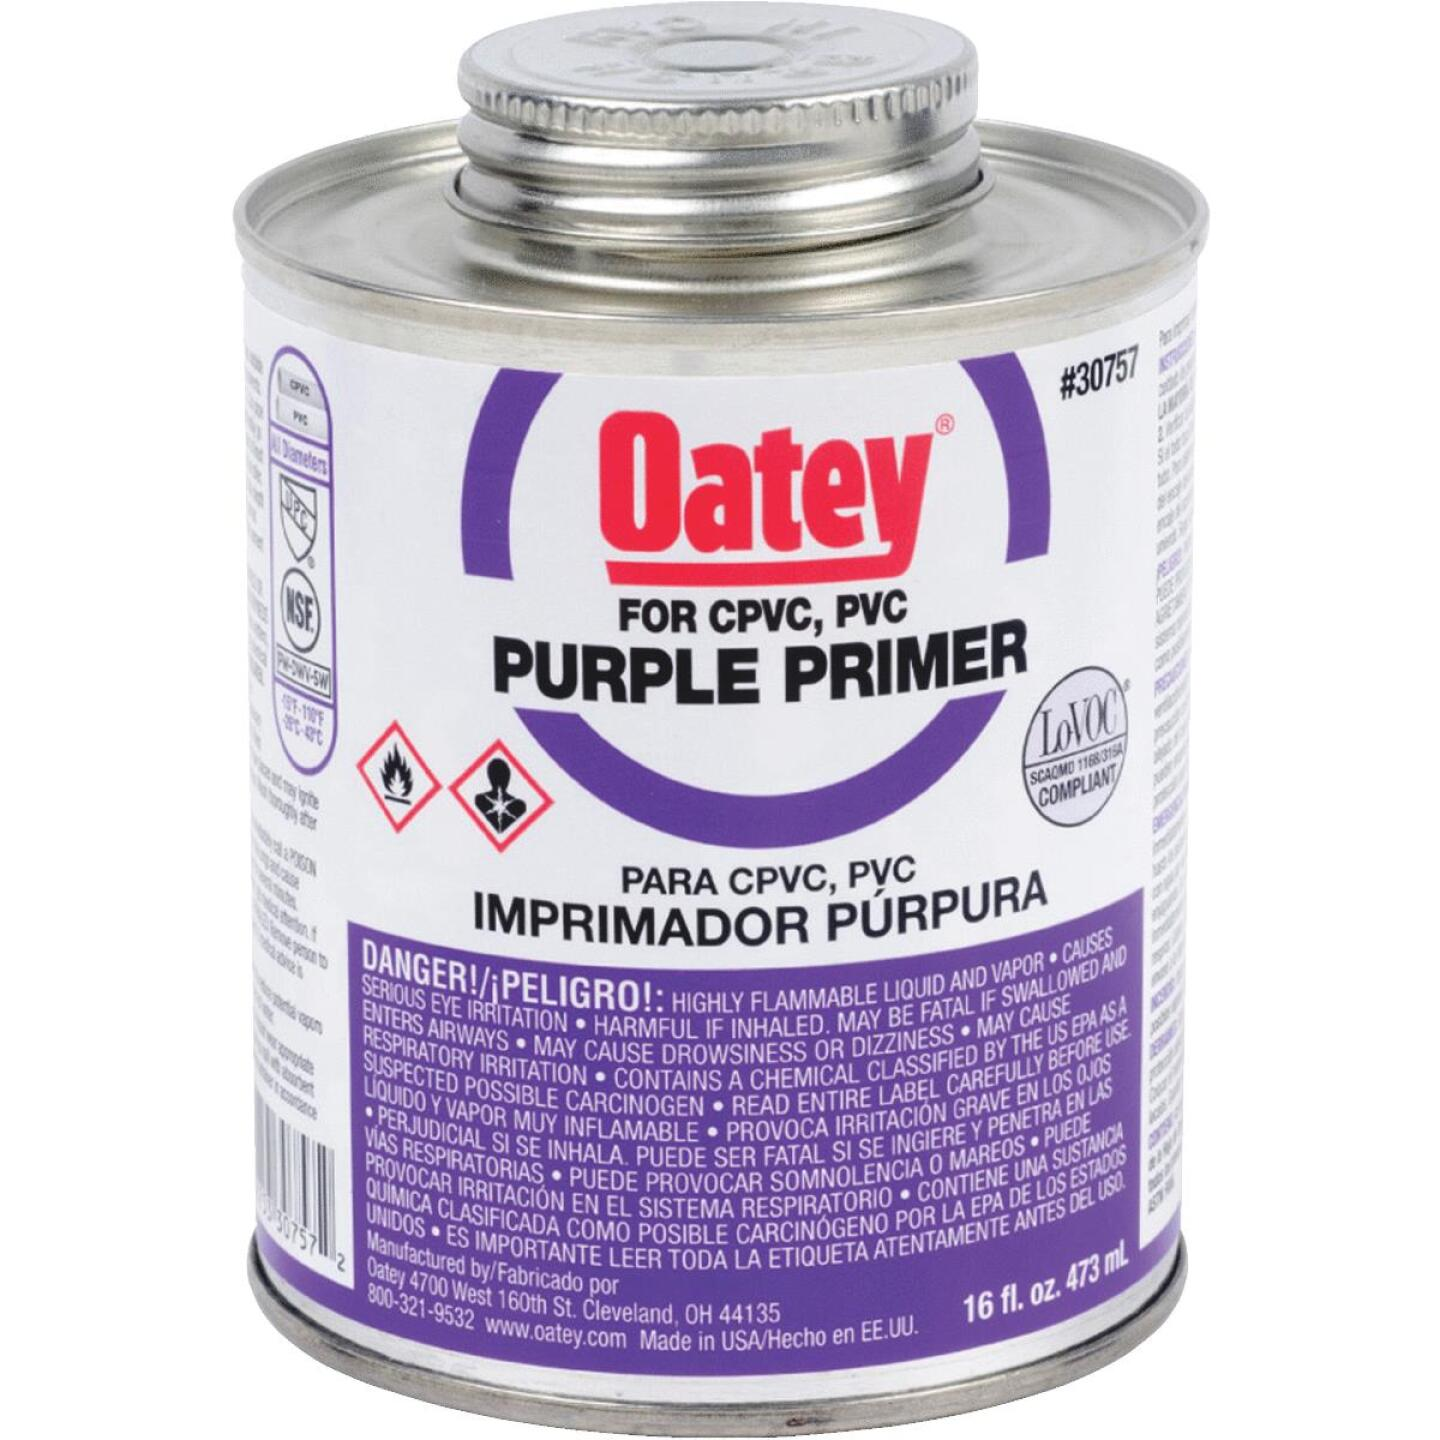 Oatey 16 Oz. Purple Pipe and Fitting Primer for PVC/CPVC Image 1